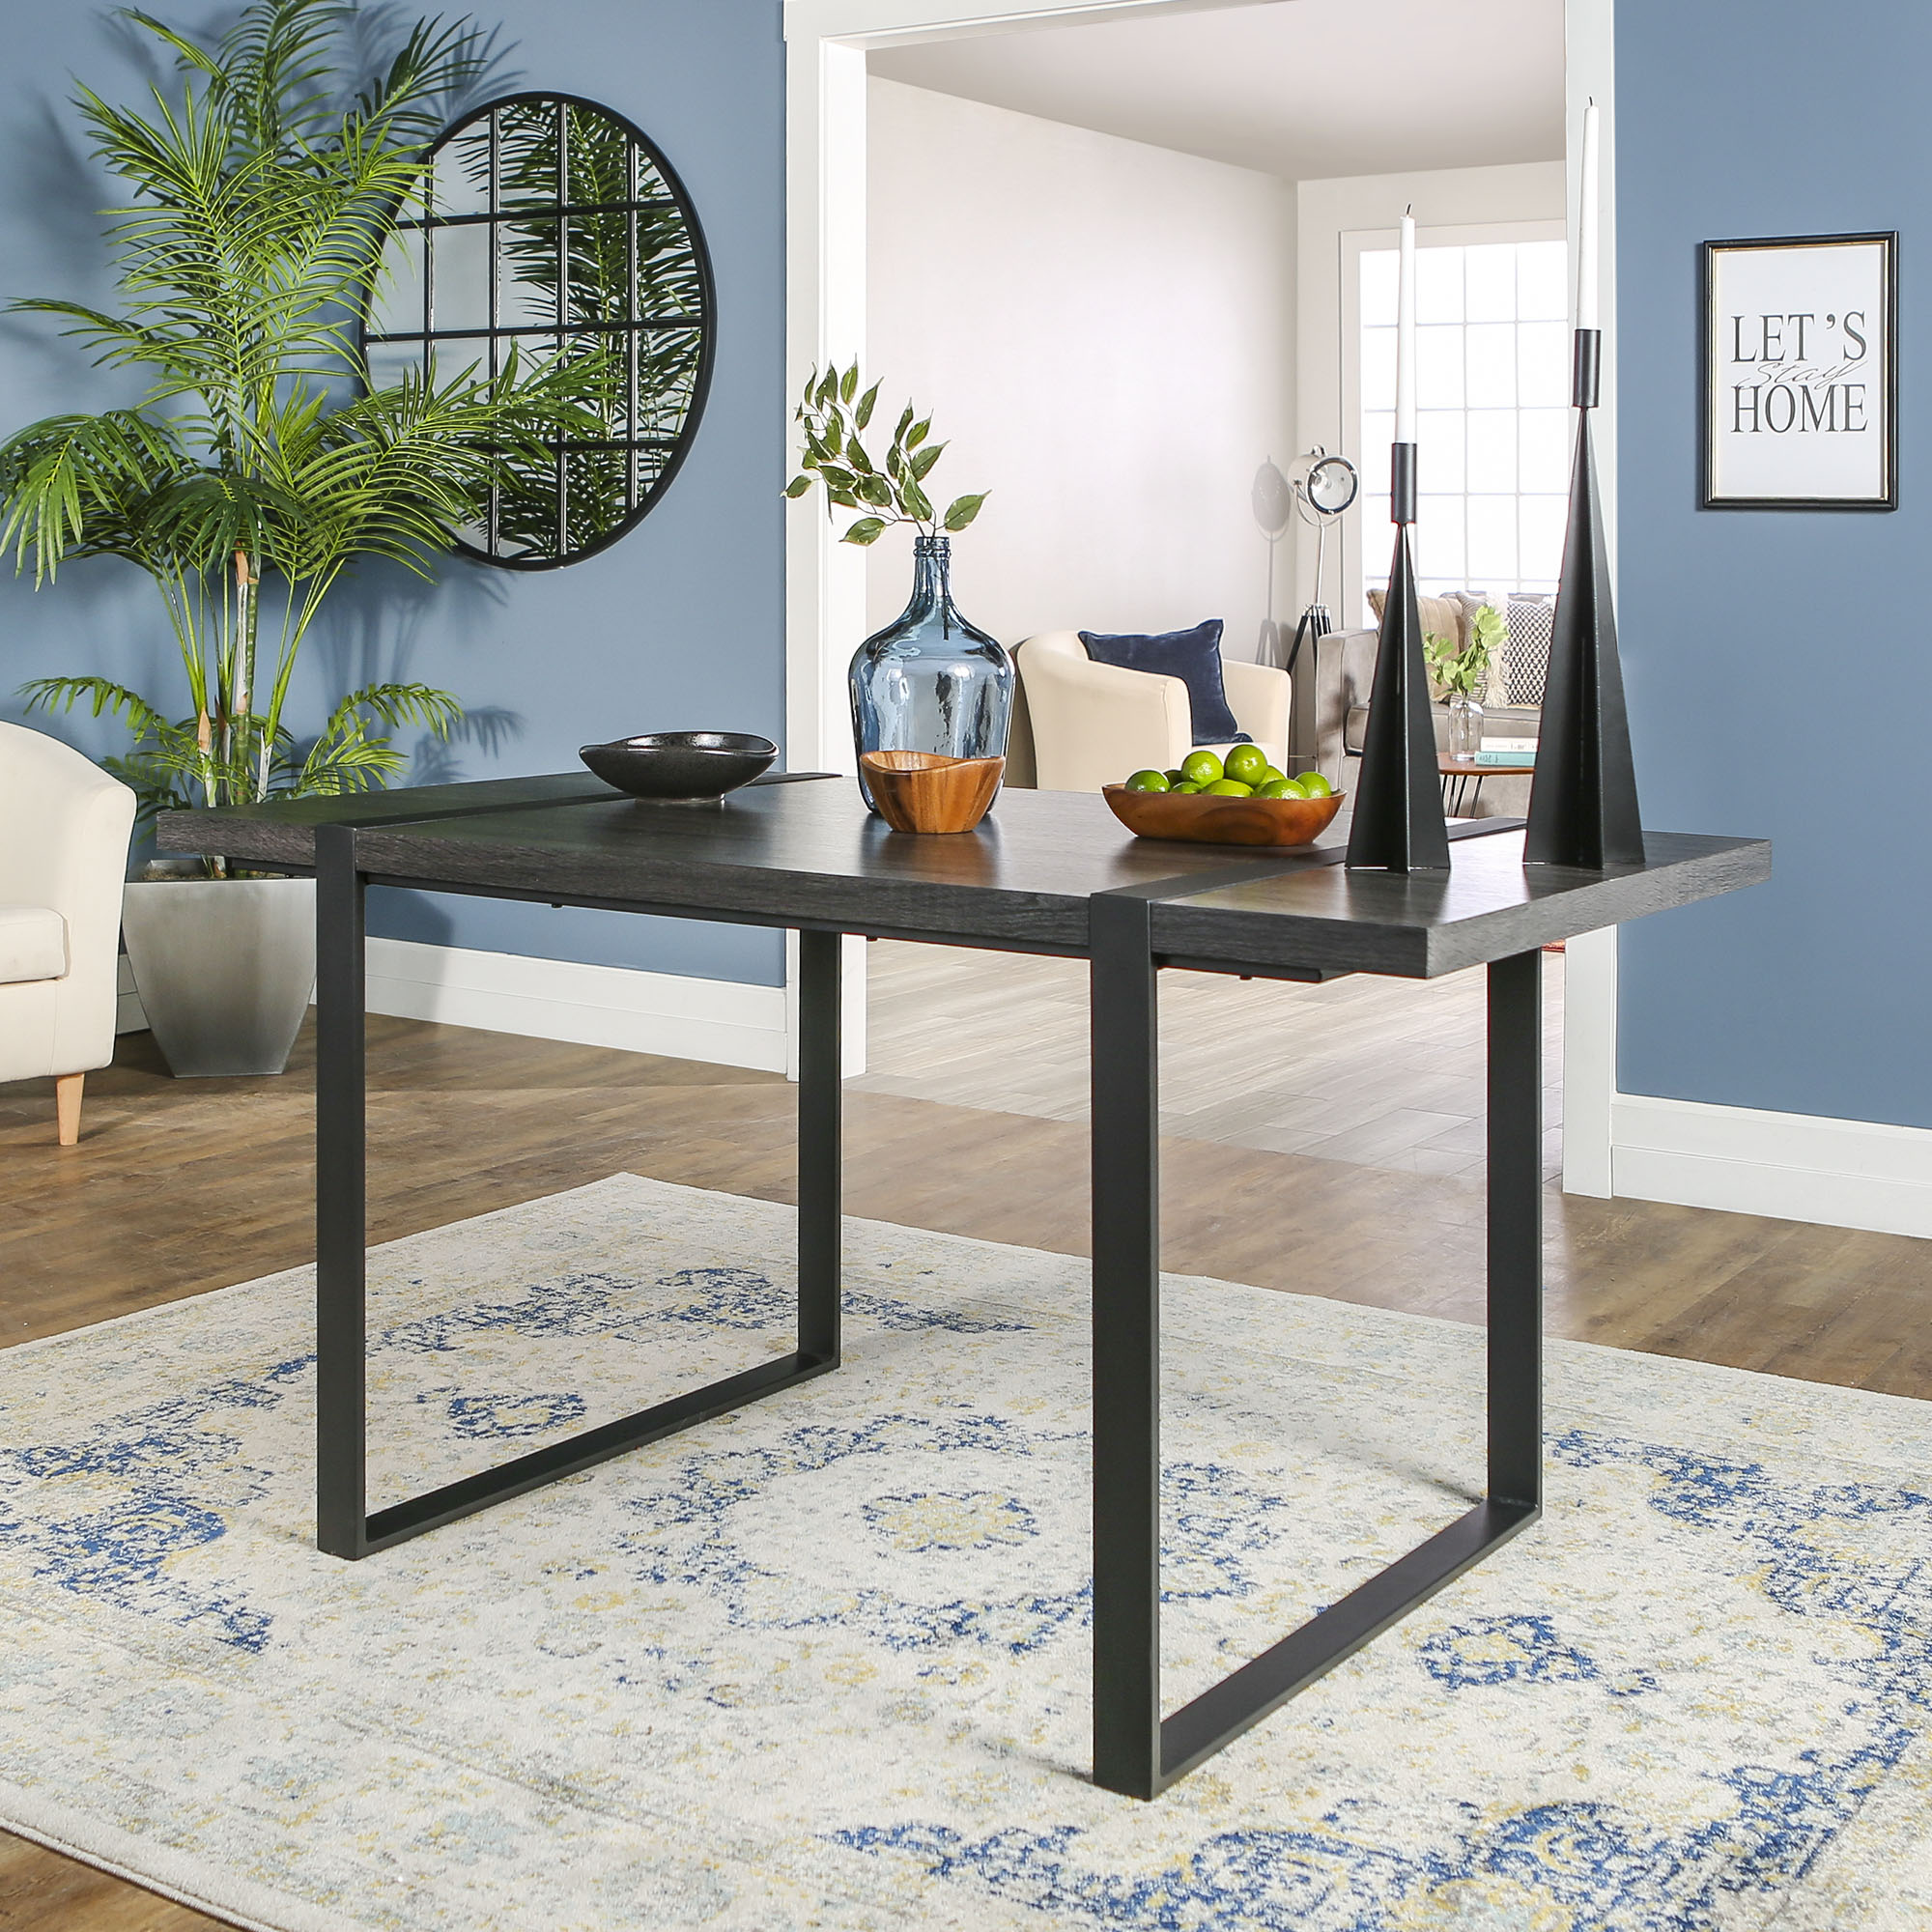 Manor Park Industrial Metal and Wood Dining Table - Charcoal